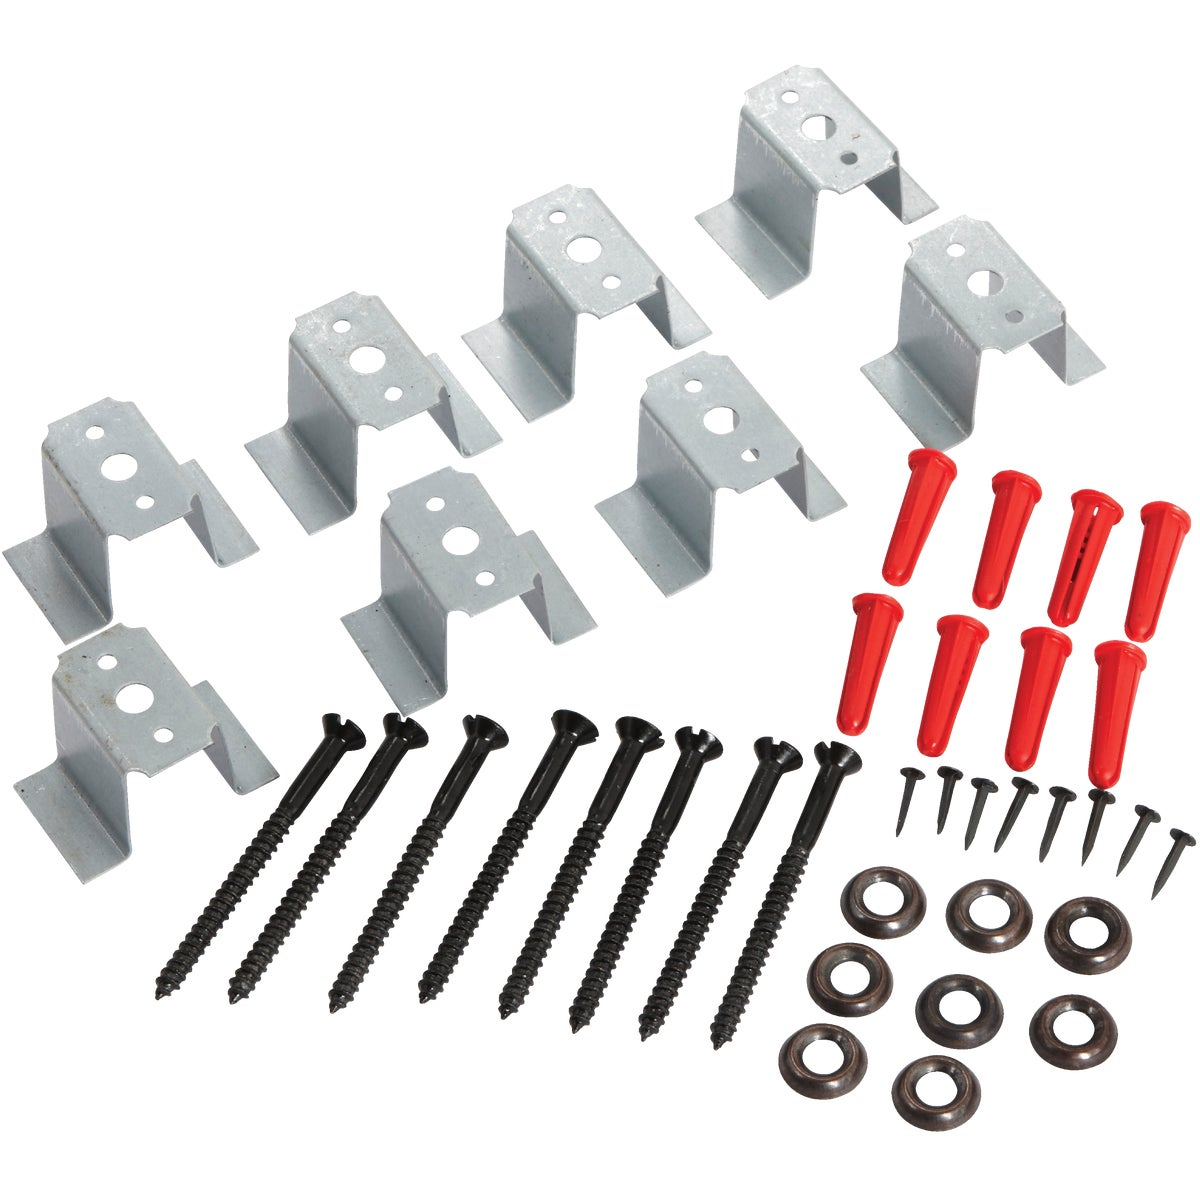 UL WALL SPACER KIT